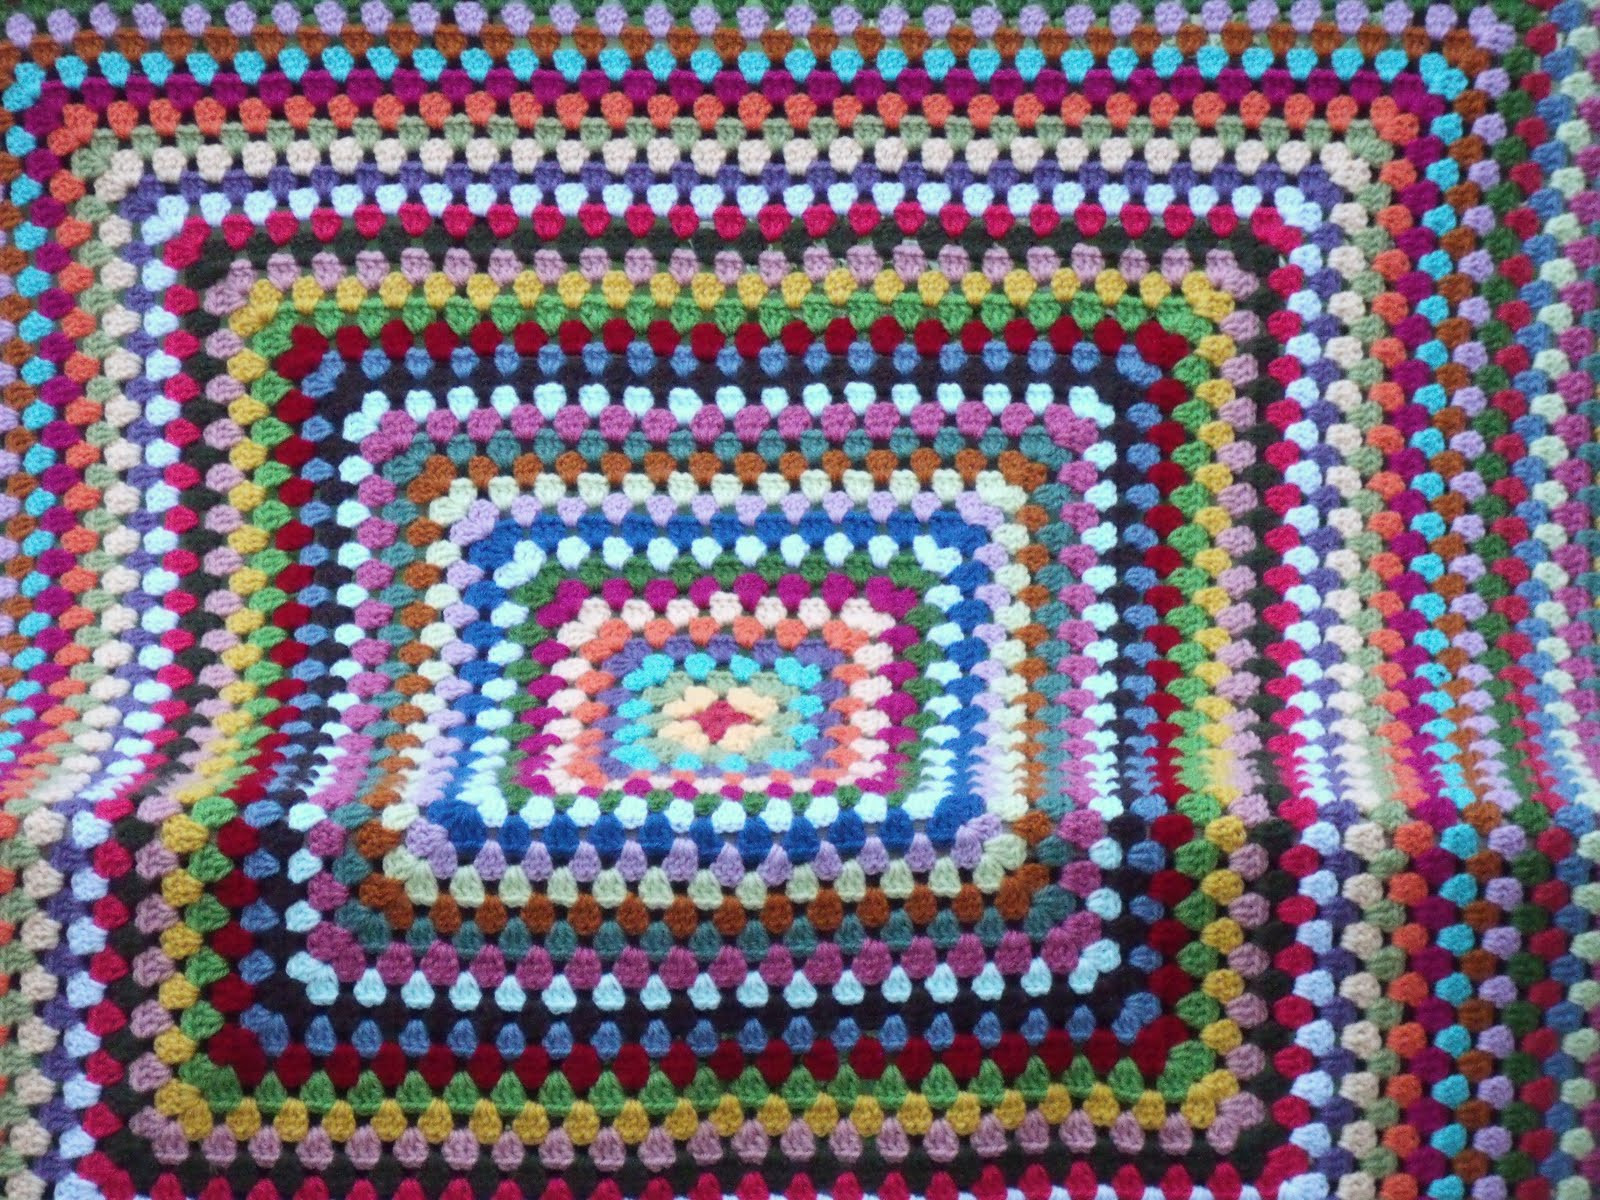 Large Crochet Blanket Awesome Easy Crochet Pattern Granny Square Afghan Tutorial Of Adorable 47 Pics Large Crochet Blanket